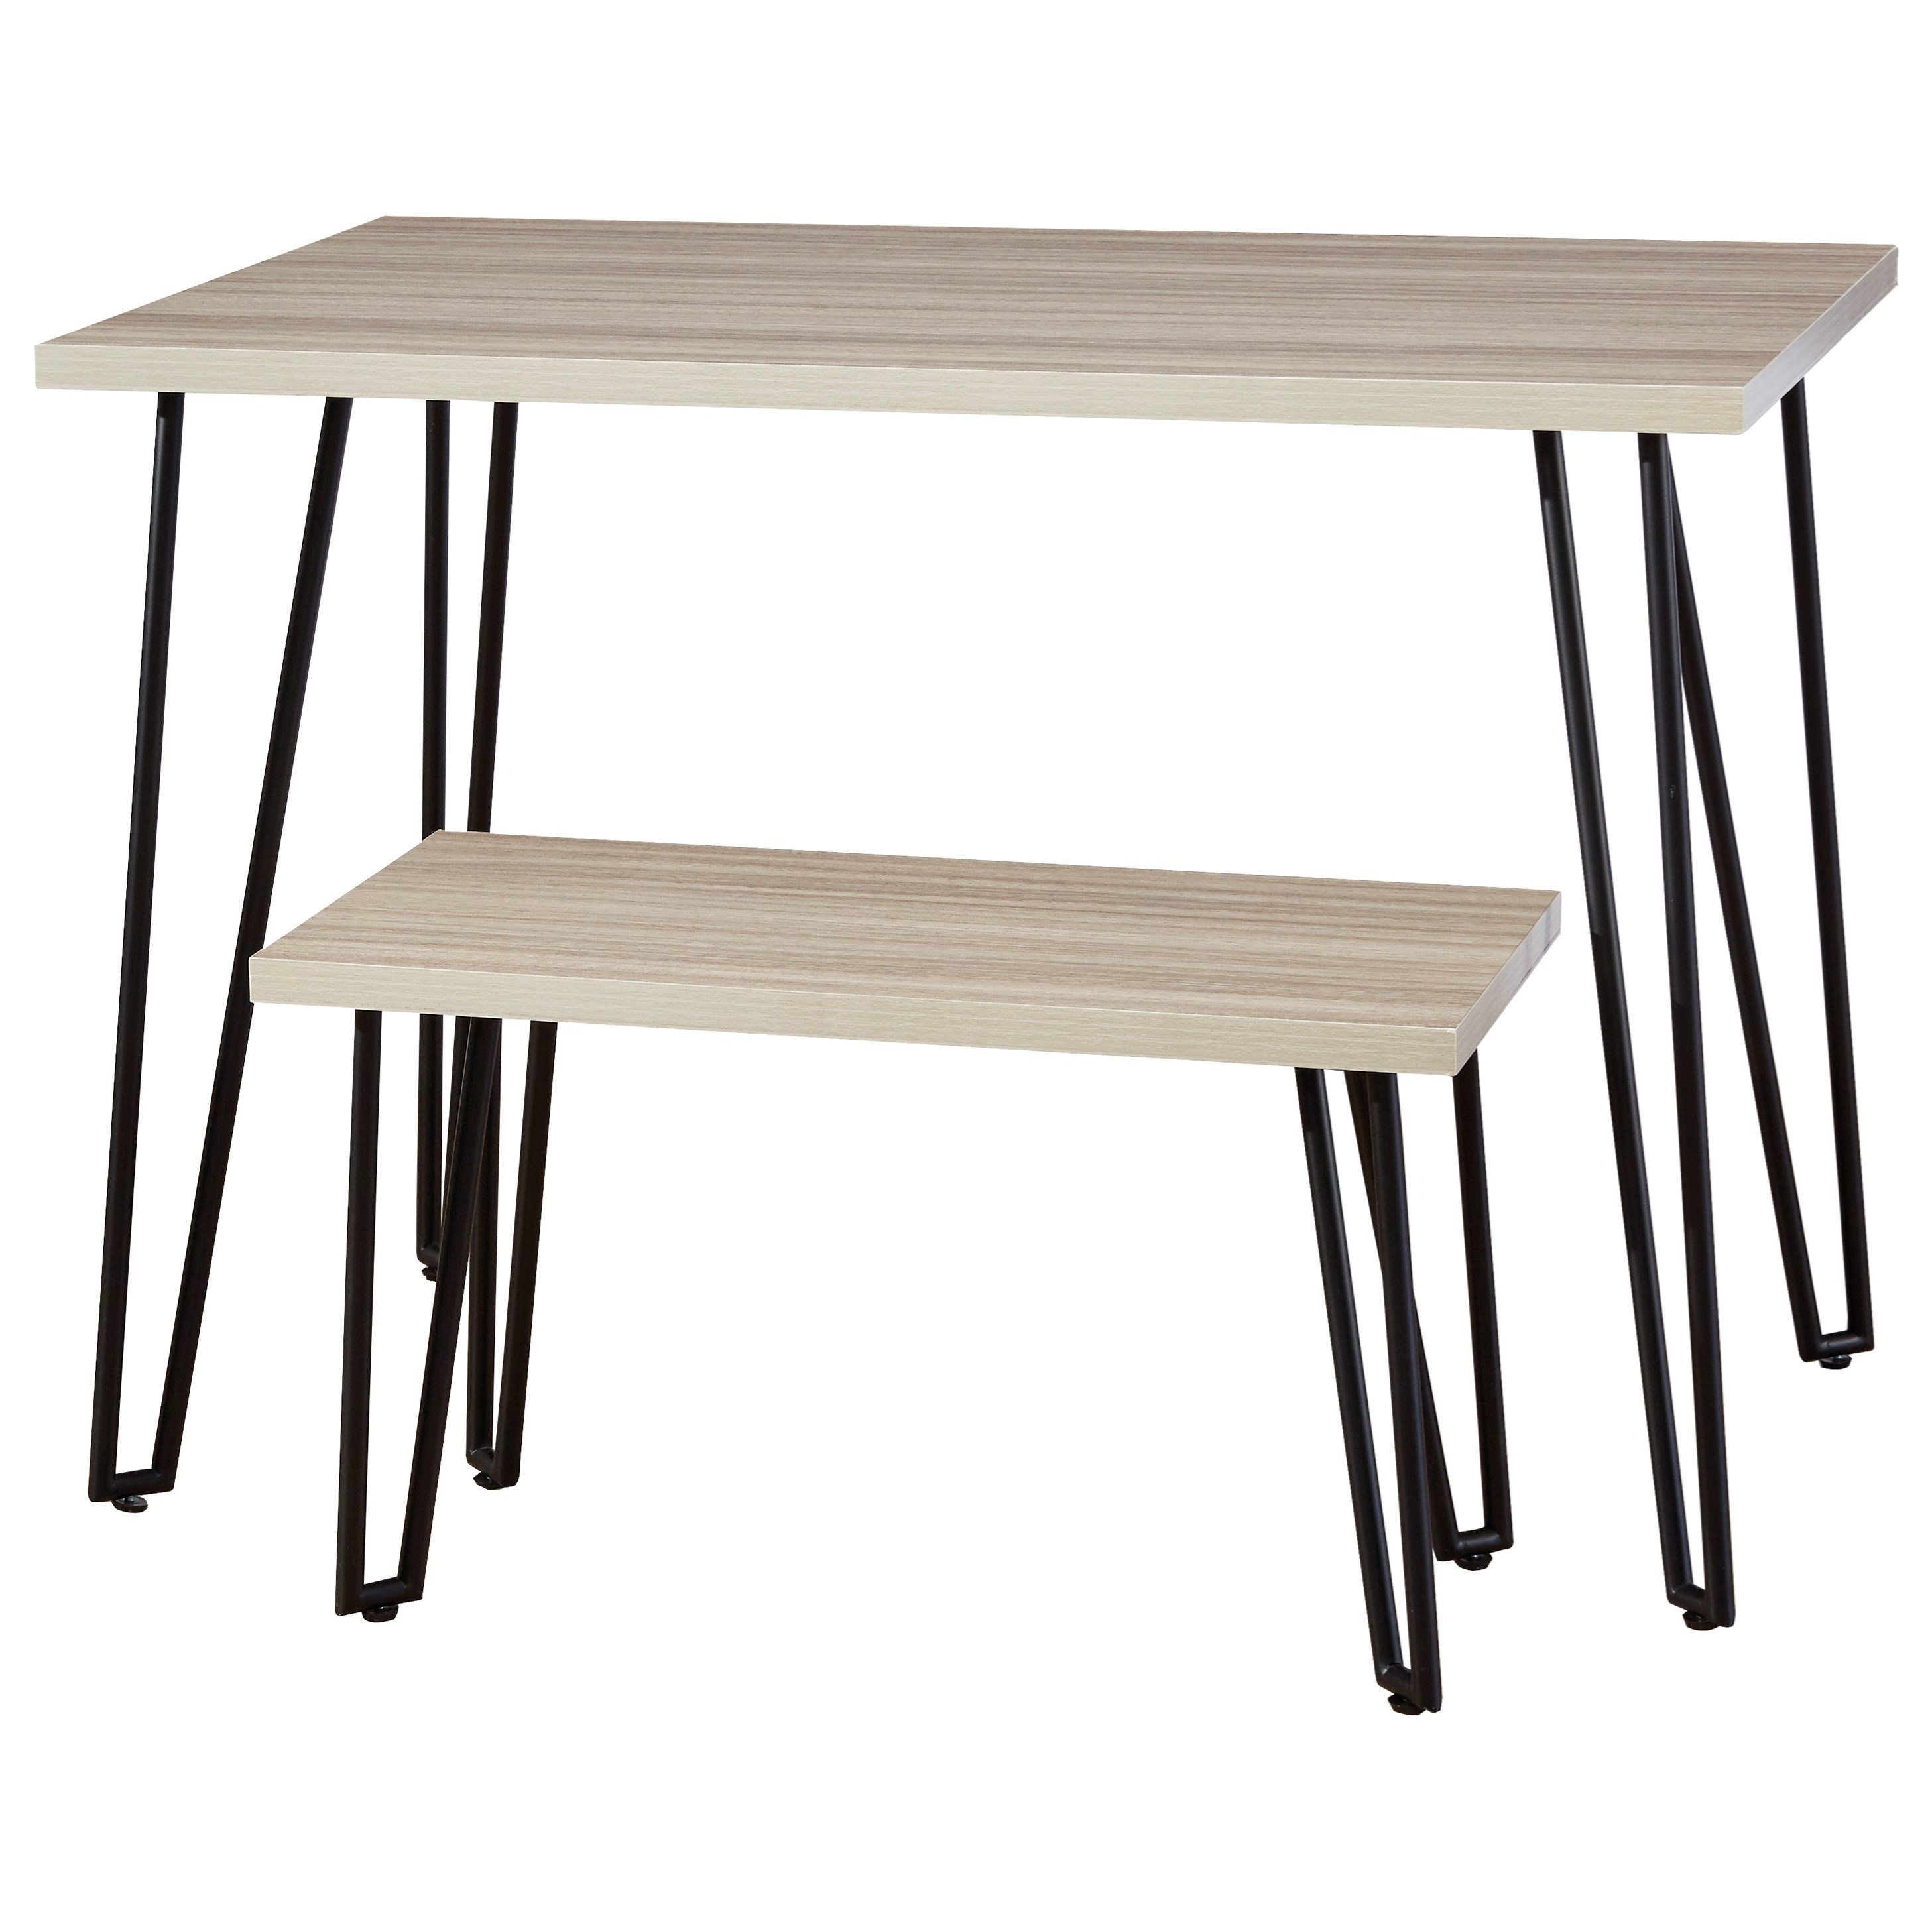 Blariden Desk w/ Bench by Signature Design by Ashley at Household Furniture